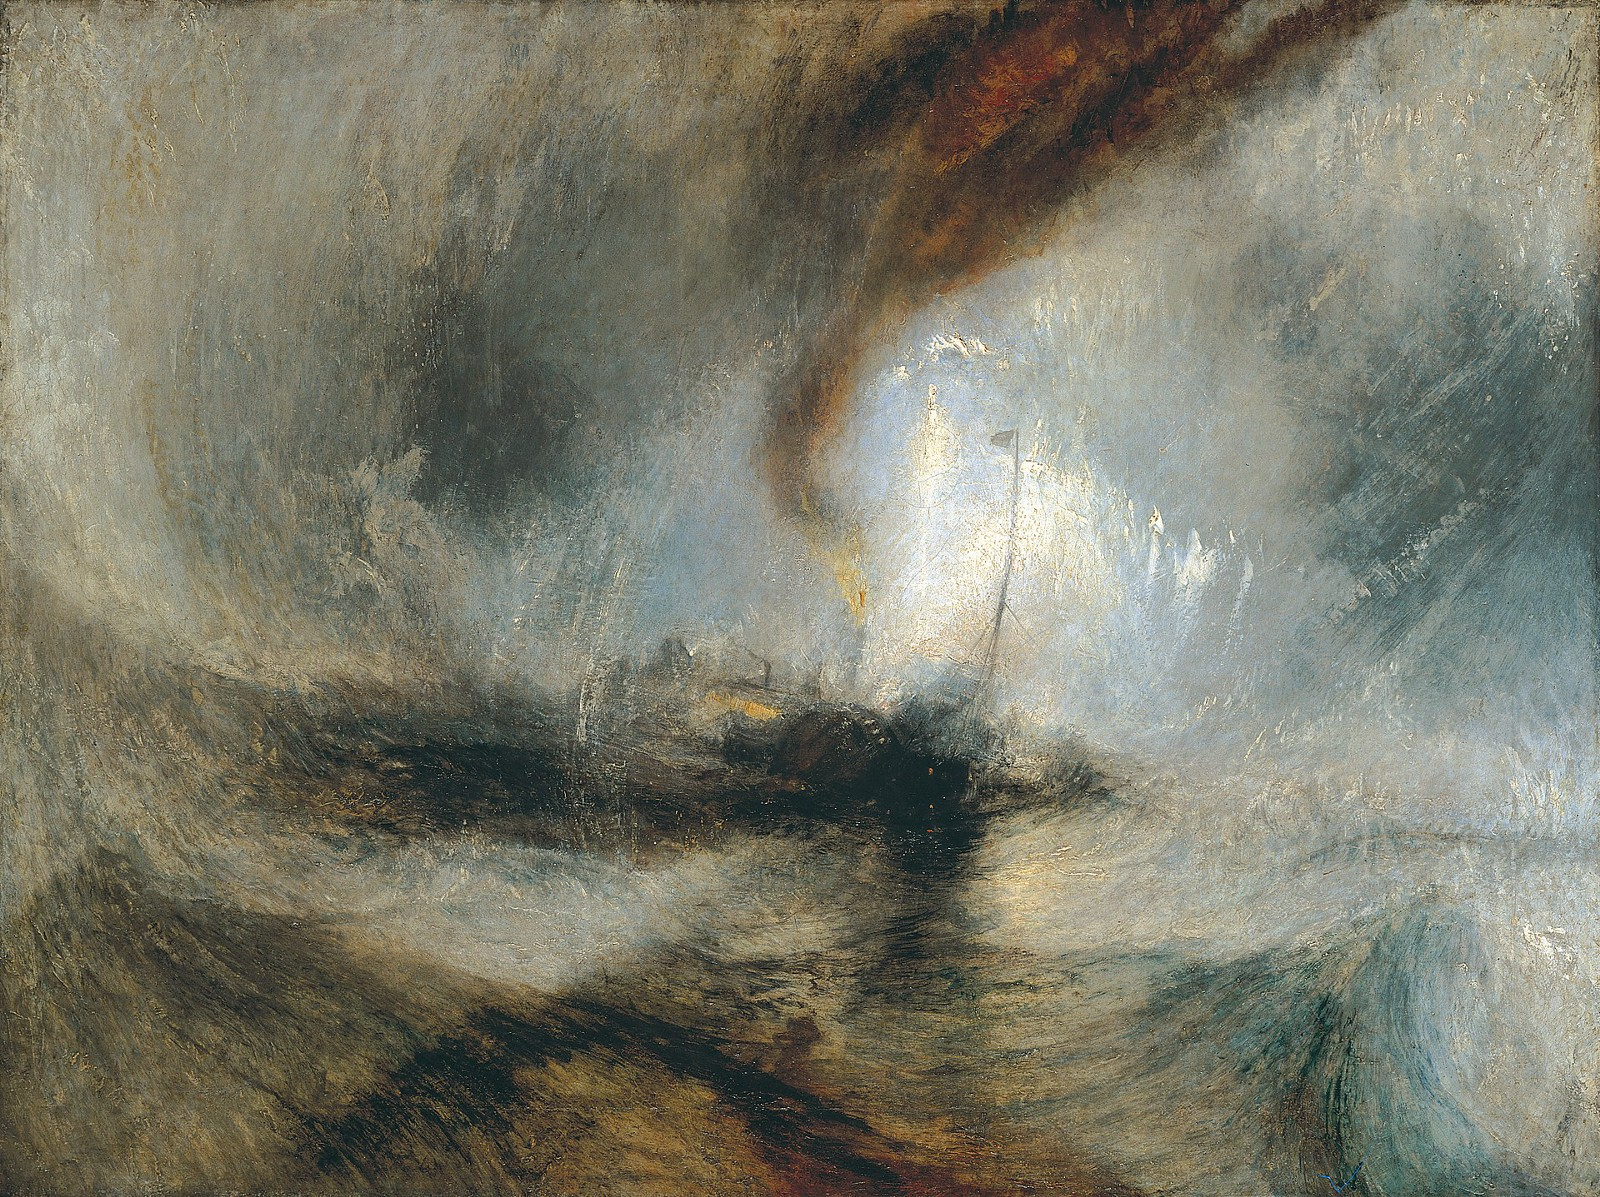 Snow Storm: Steam-Boat off a Harbour's Mouth, J. M. W. Turner, 1842